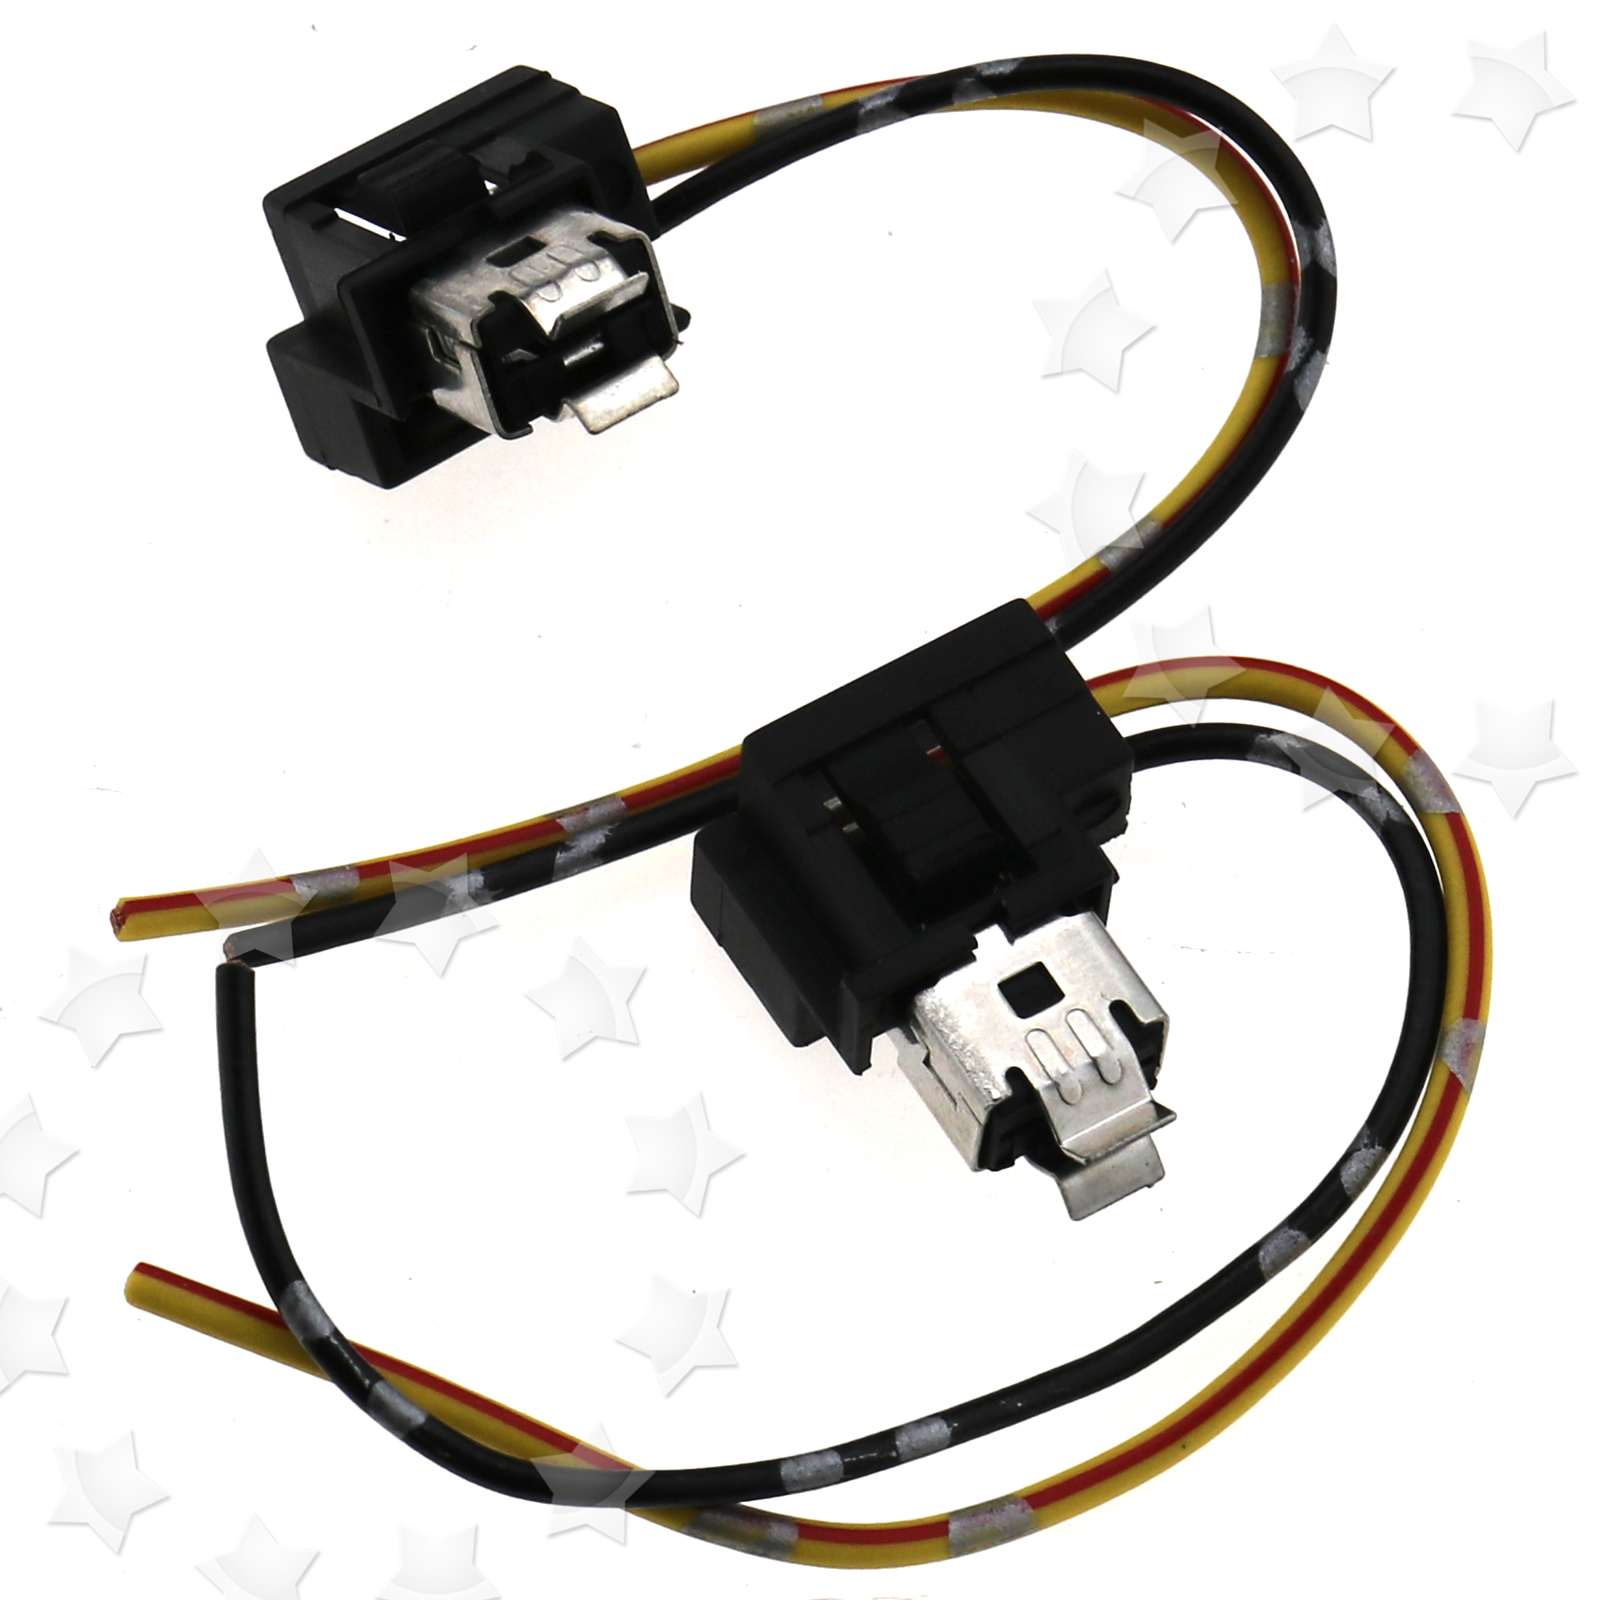 H1 Bulb Wiring Wire Center Circuitdiagram Basiccircuit Analogcircuit Timeraclineinterface 12v Head Fog Lamp Light Socket Holder Connector Plug Rh Ebay Com H7